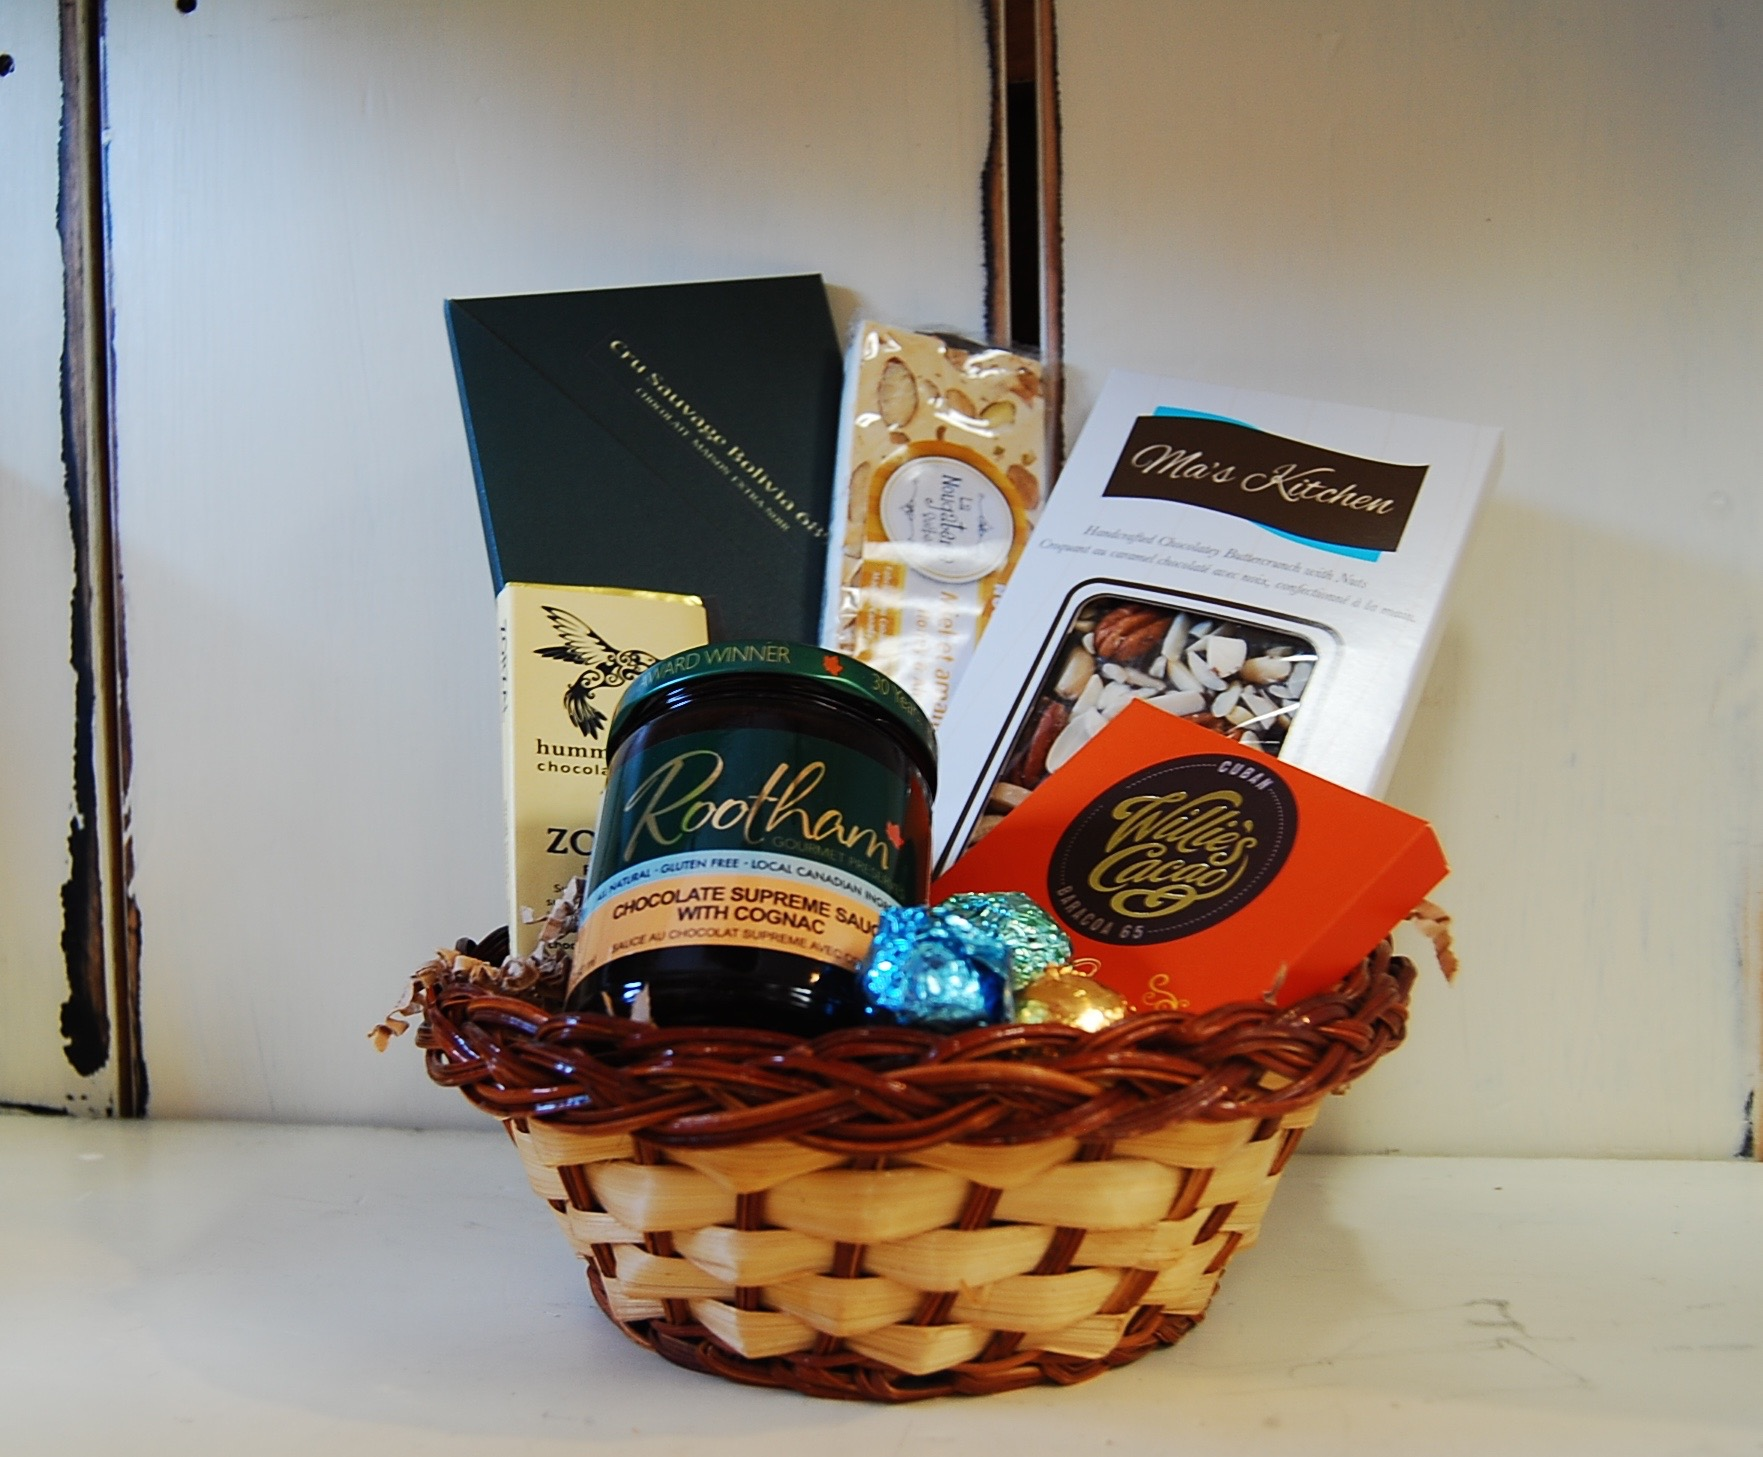 Almonte Gift Basket - Dreams of Chocolate - Pêches & Poivre from Sweet to Savoury